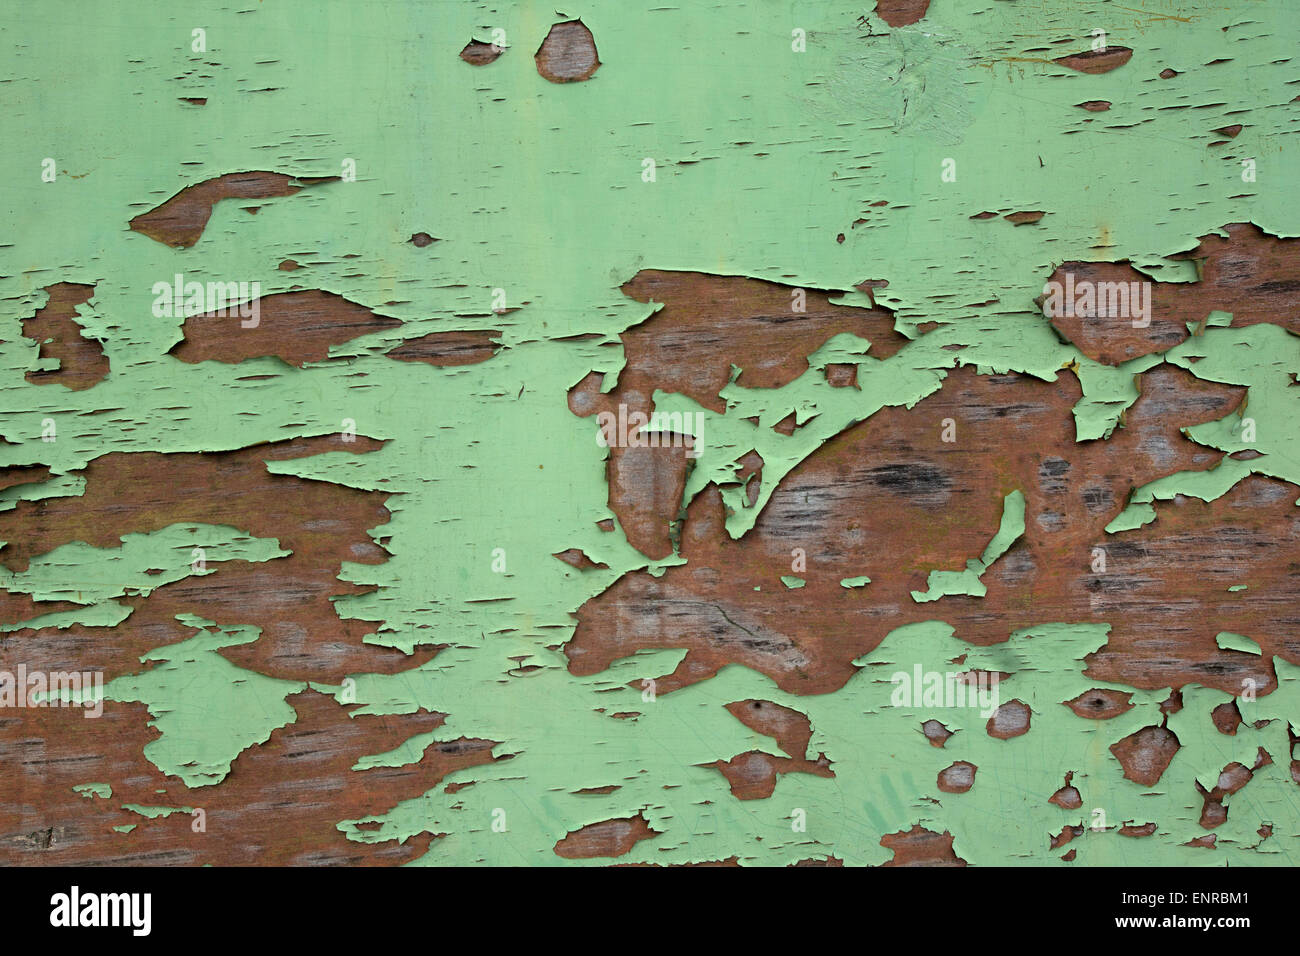 Old cracked green paint texture - Stock Image